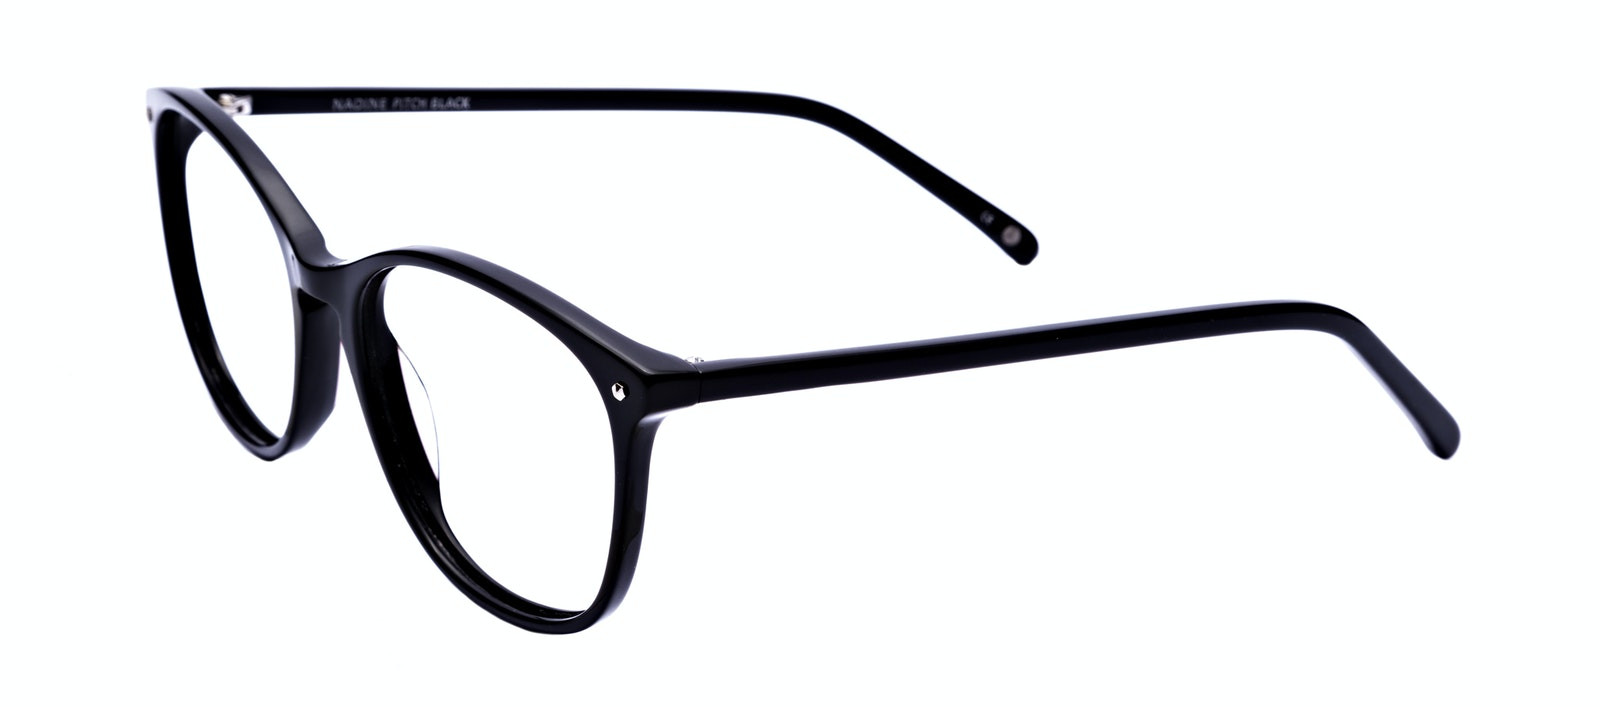 Affordable Fashion Glasses Round Eyeglasses Women Versa Pitch Black Tilt